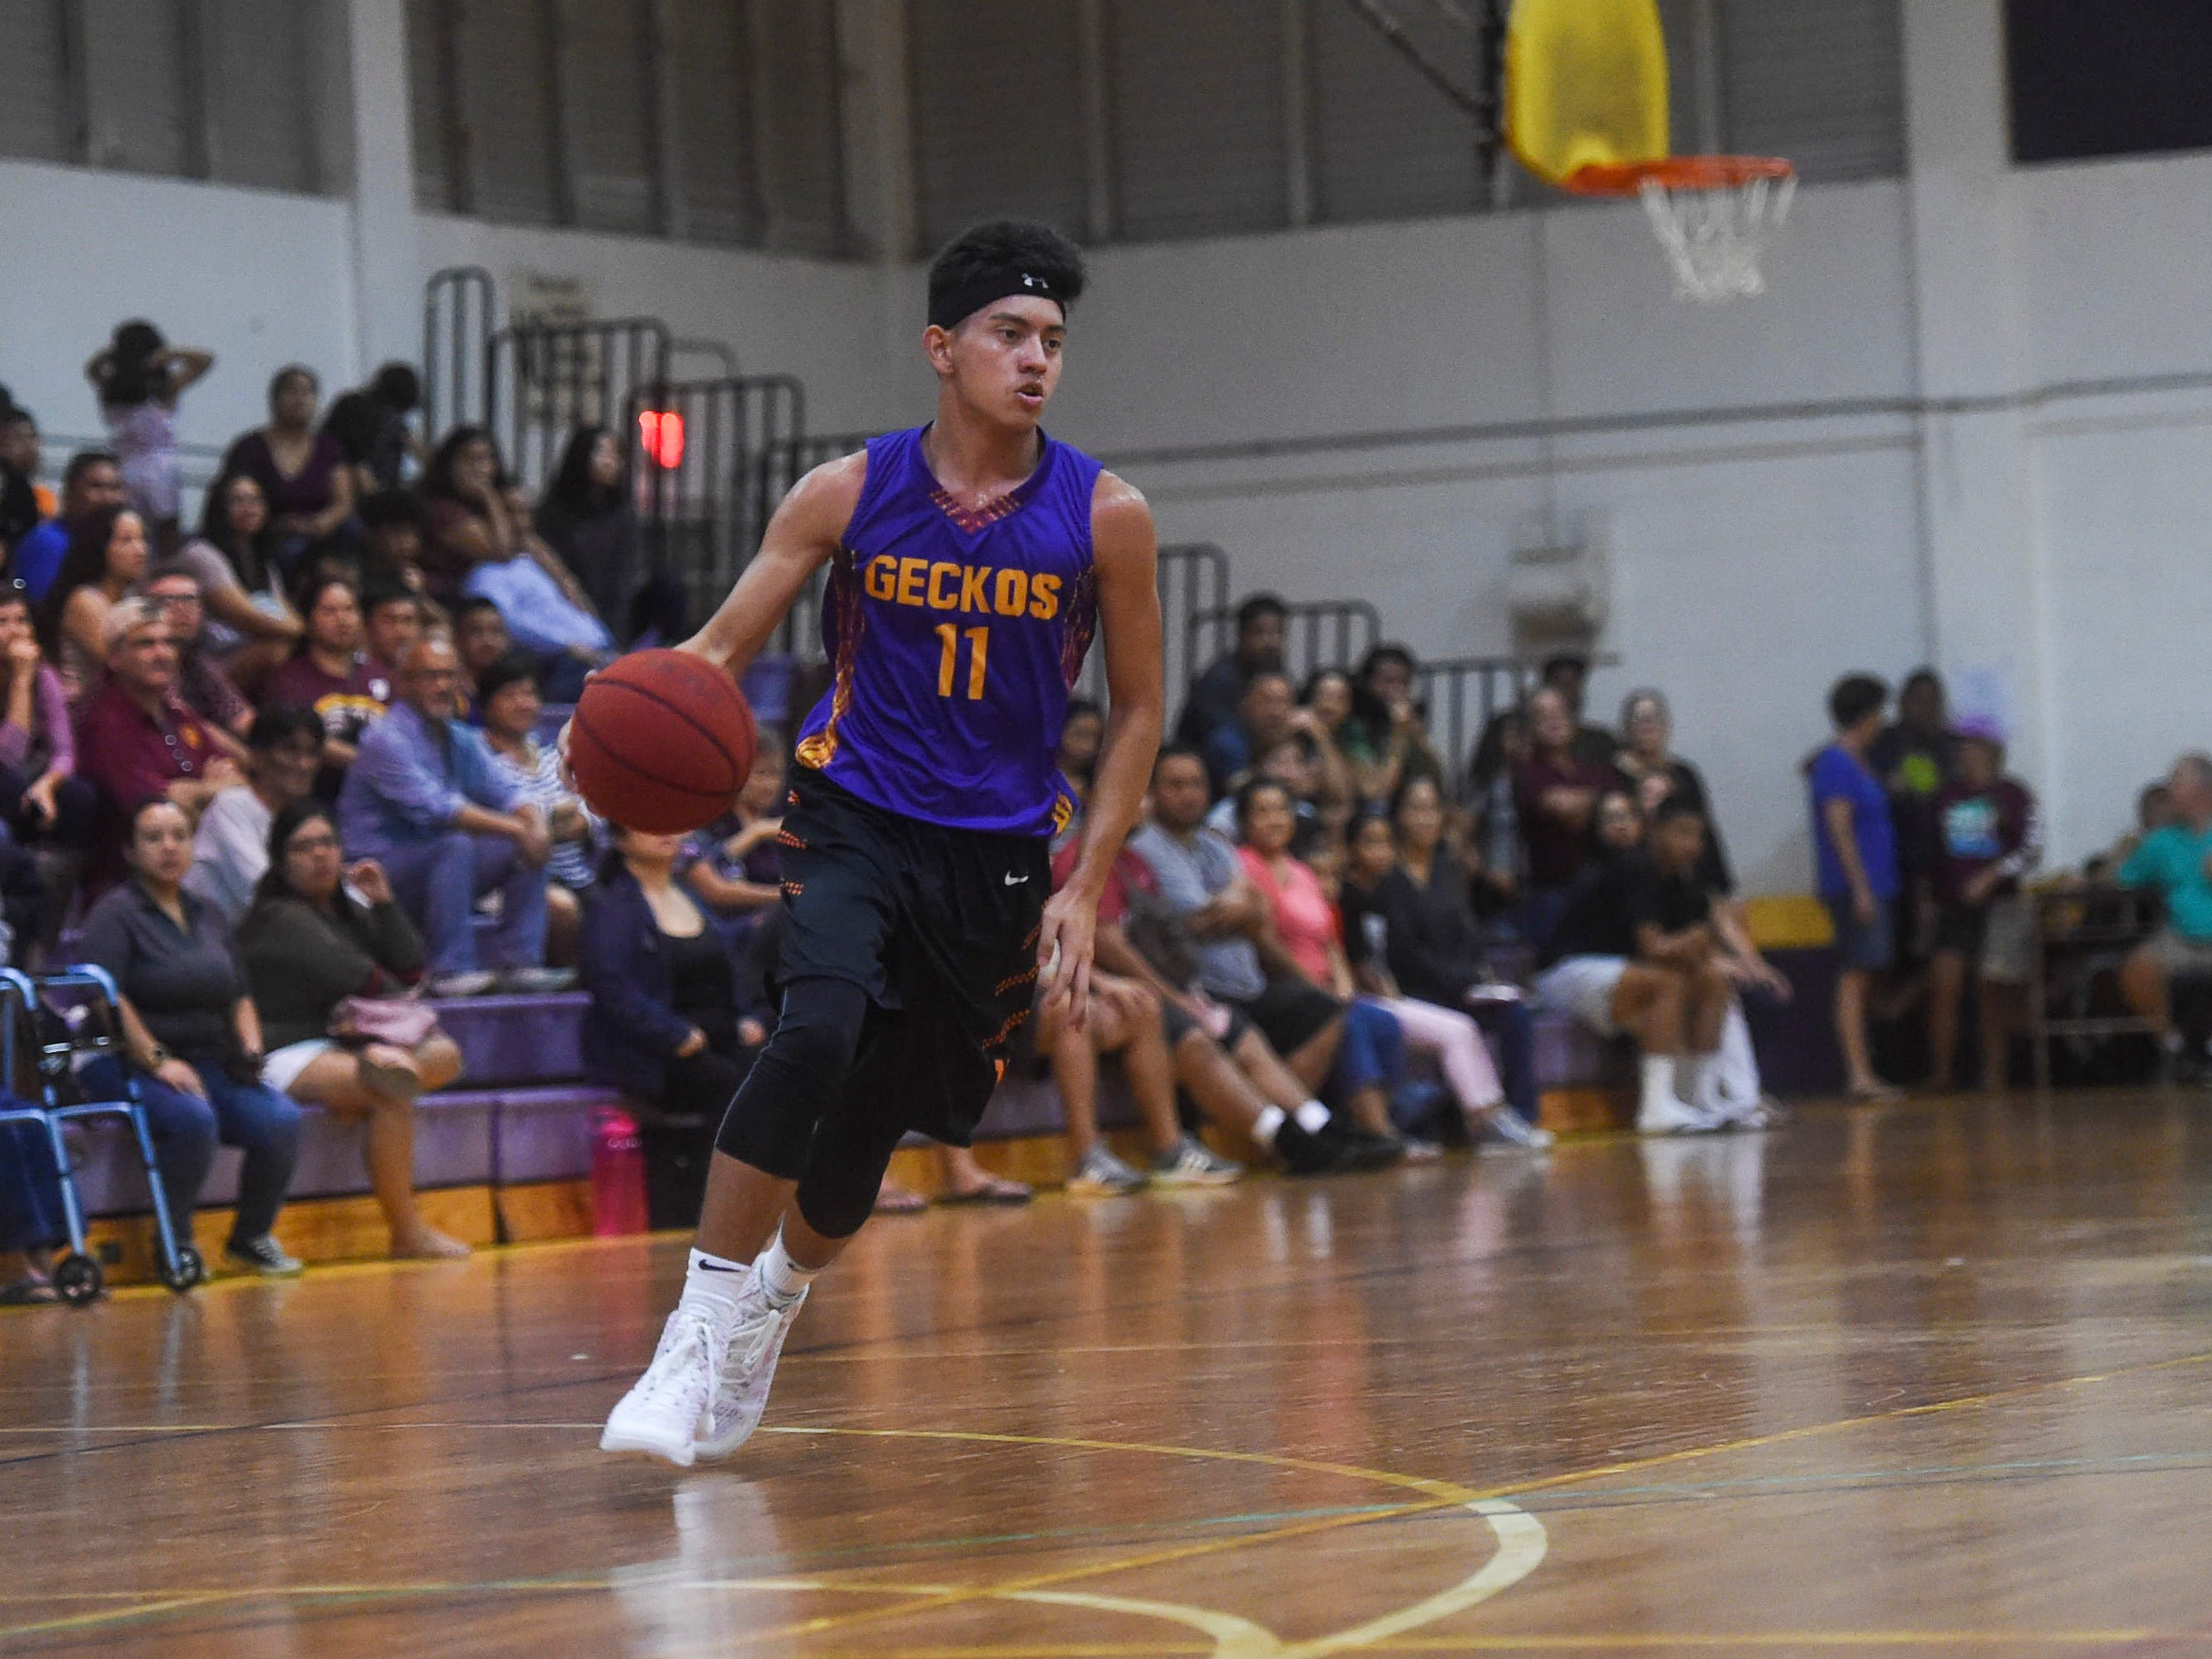 George Washington player Ricky Macias (11) handles the ball during an Independent Interscholastic Athletic Association of Guam Boys' Basketball game against the Father Duenas Friars at the GW High School gym, Jan. 19, 2019. The Friars came through with a 52-69 comeback victory over the Geckos after trailing in the first half.